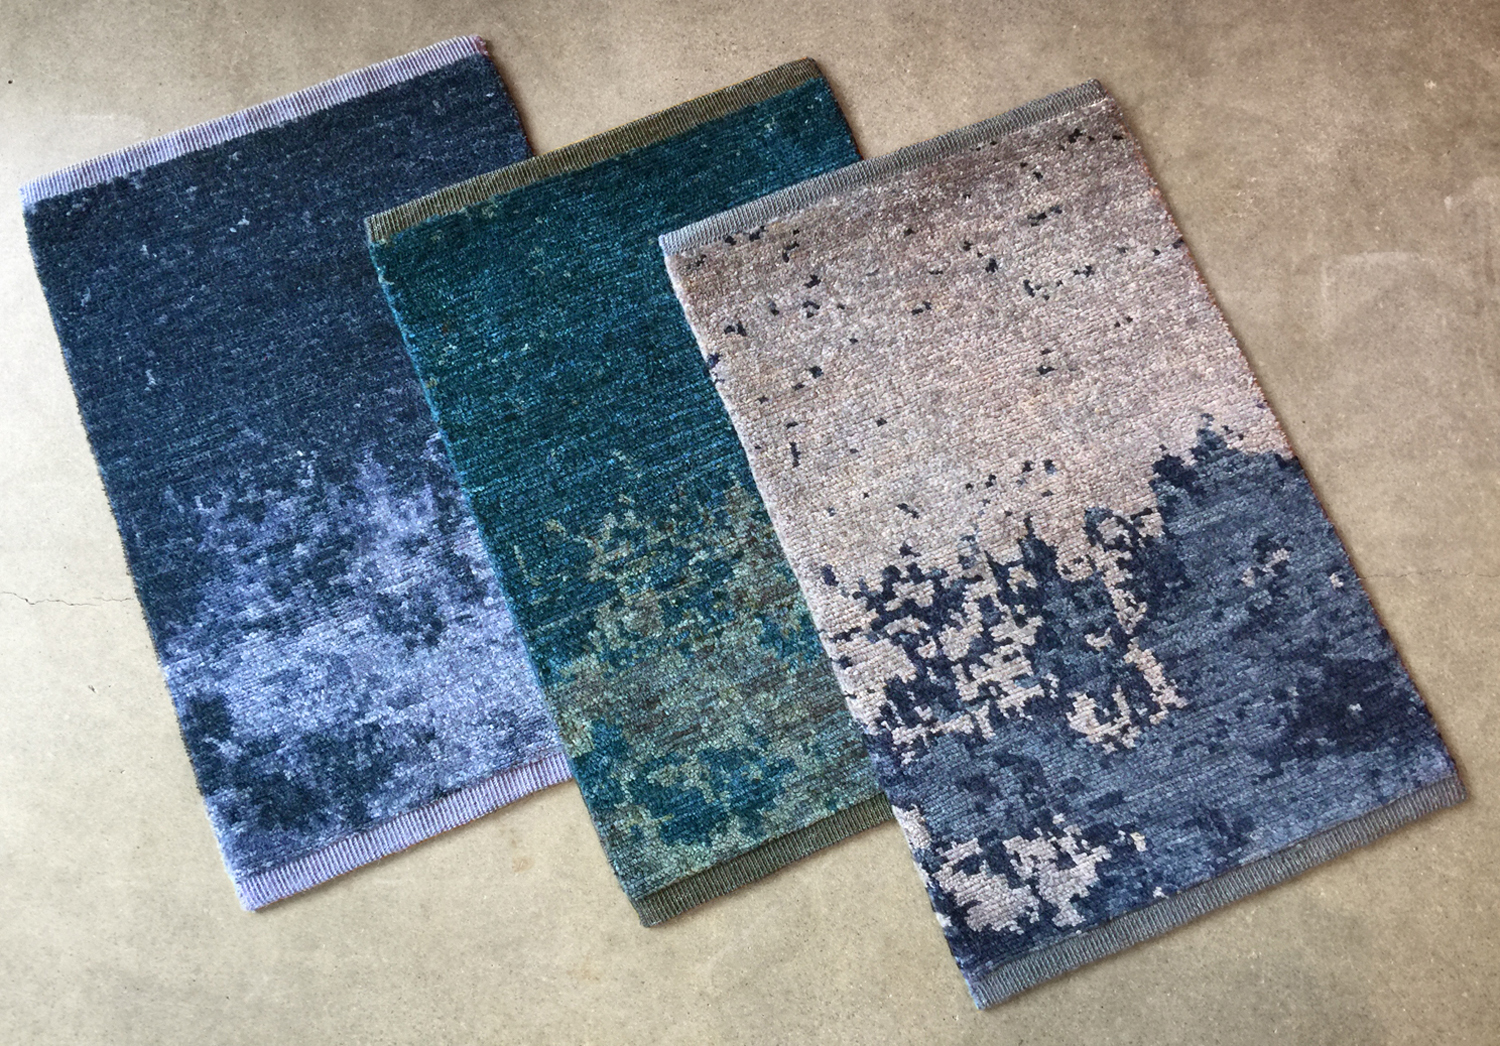 Lapchi Nebulous rug pattern samples